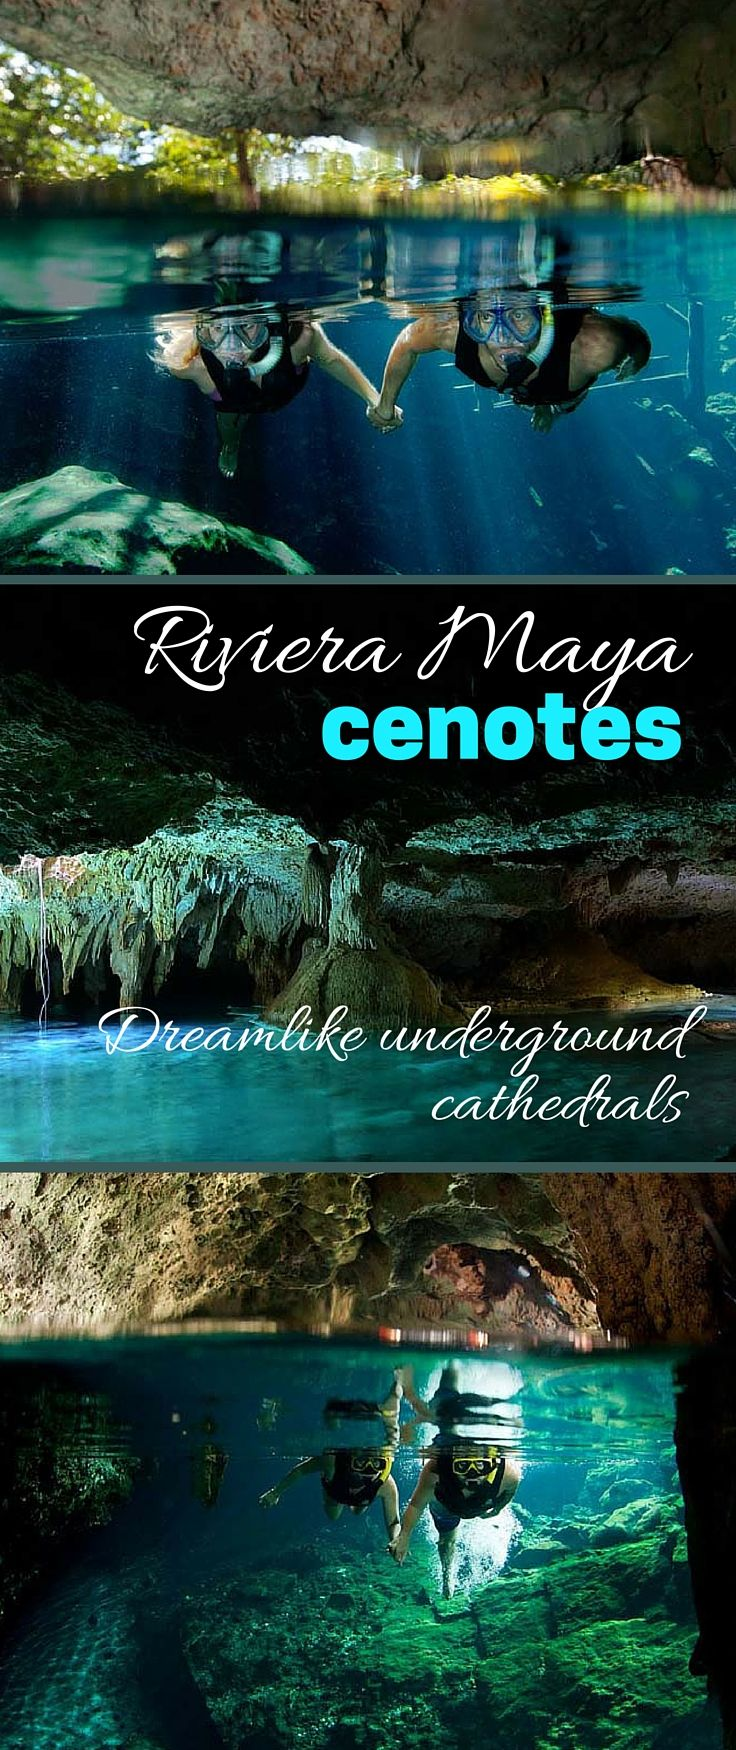 RIVIERA MAYA, Mexico | With their stalactites and stalagmites, and pools of water shining an unearthly blue, Riviera Maya cenotes look like wondrous underground cathedrals. You can swim and snorkel inside many!